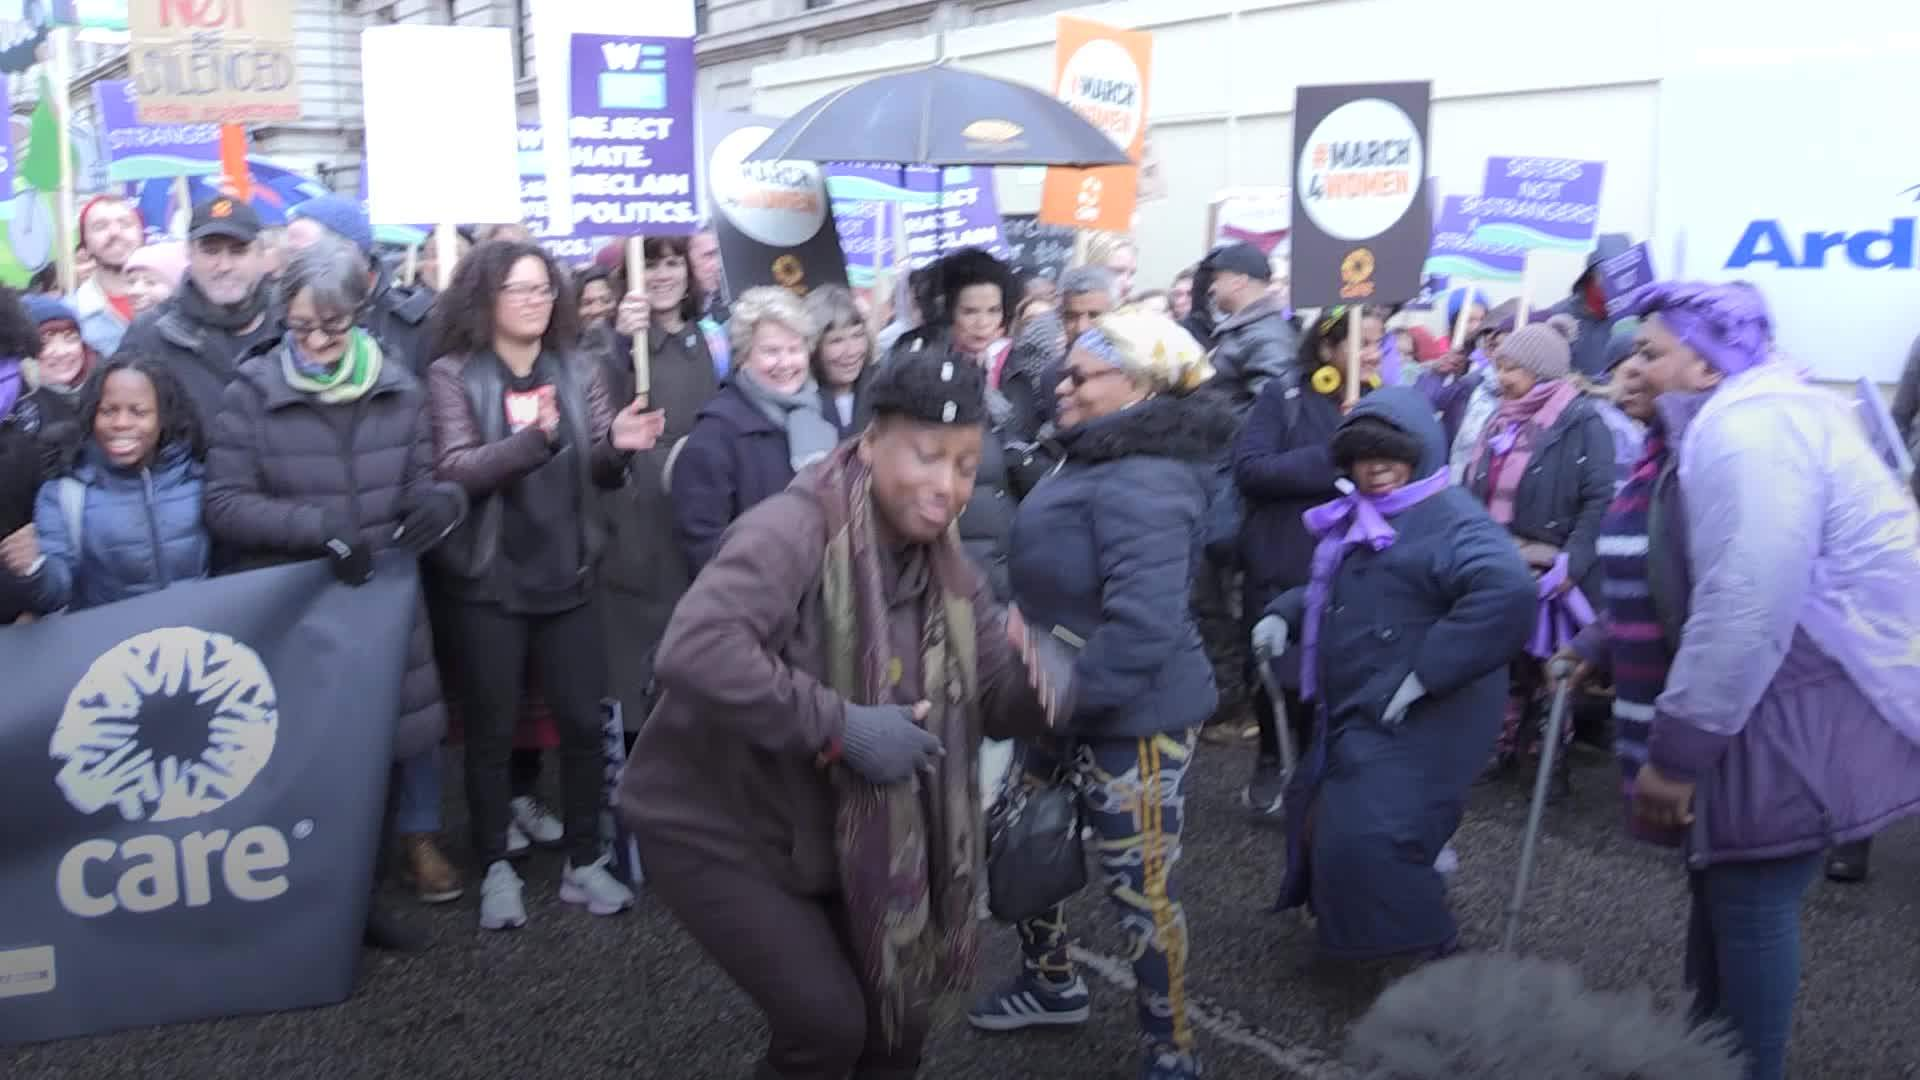 Sandi Toksvig joins International Women's Day protesters to demand climate and gender justice